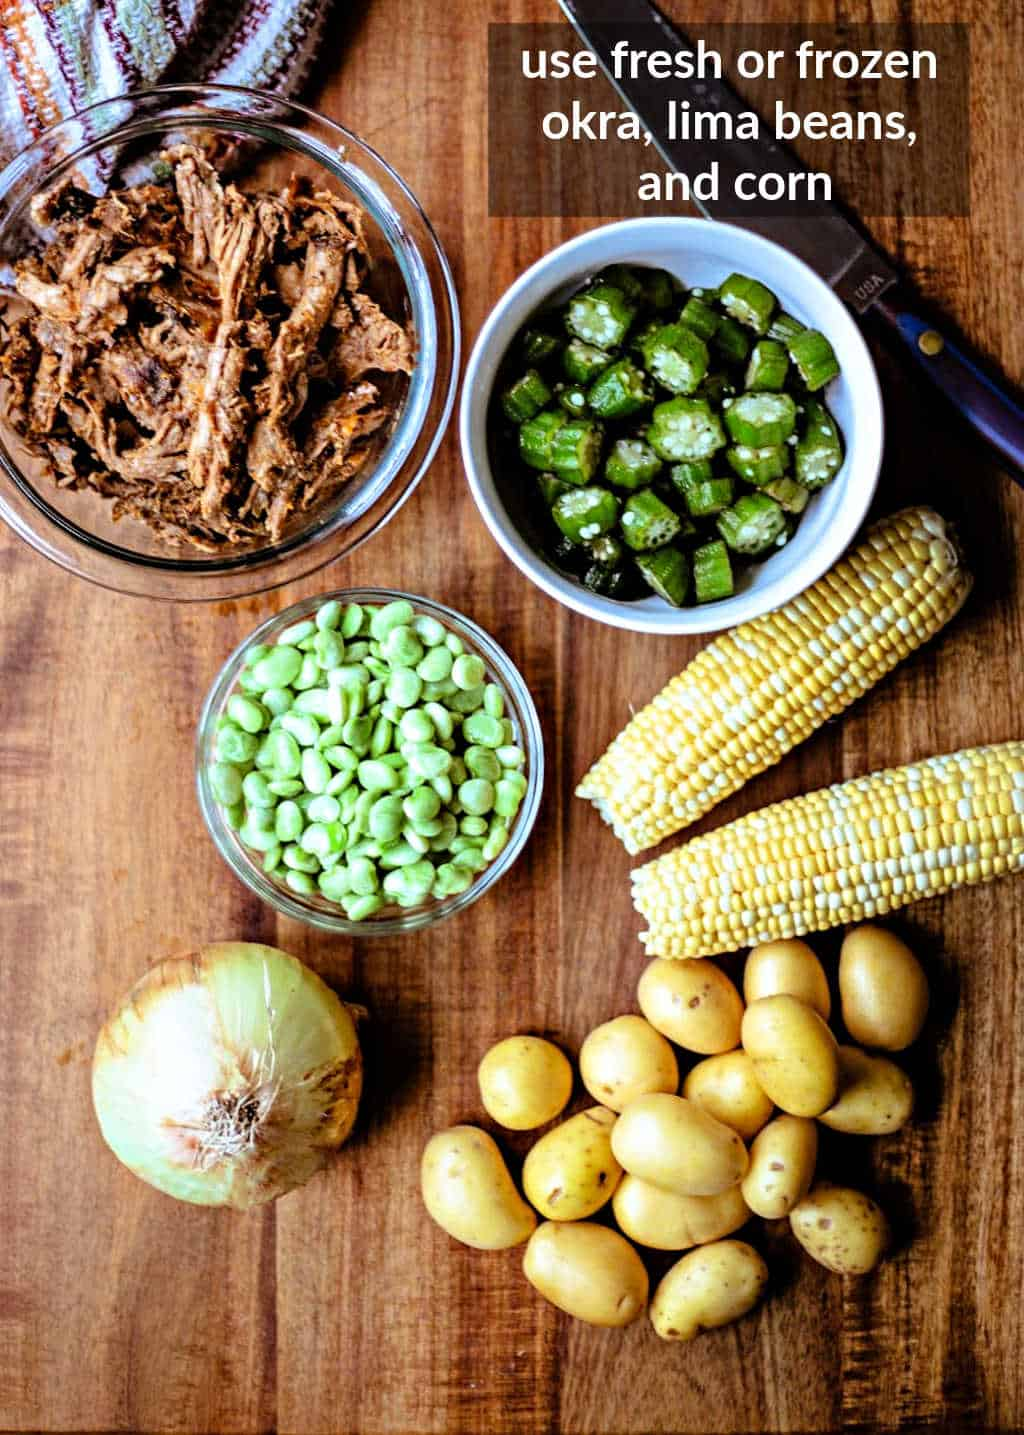 ingredients for Brunswick Stew on a wooden table